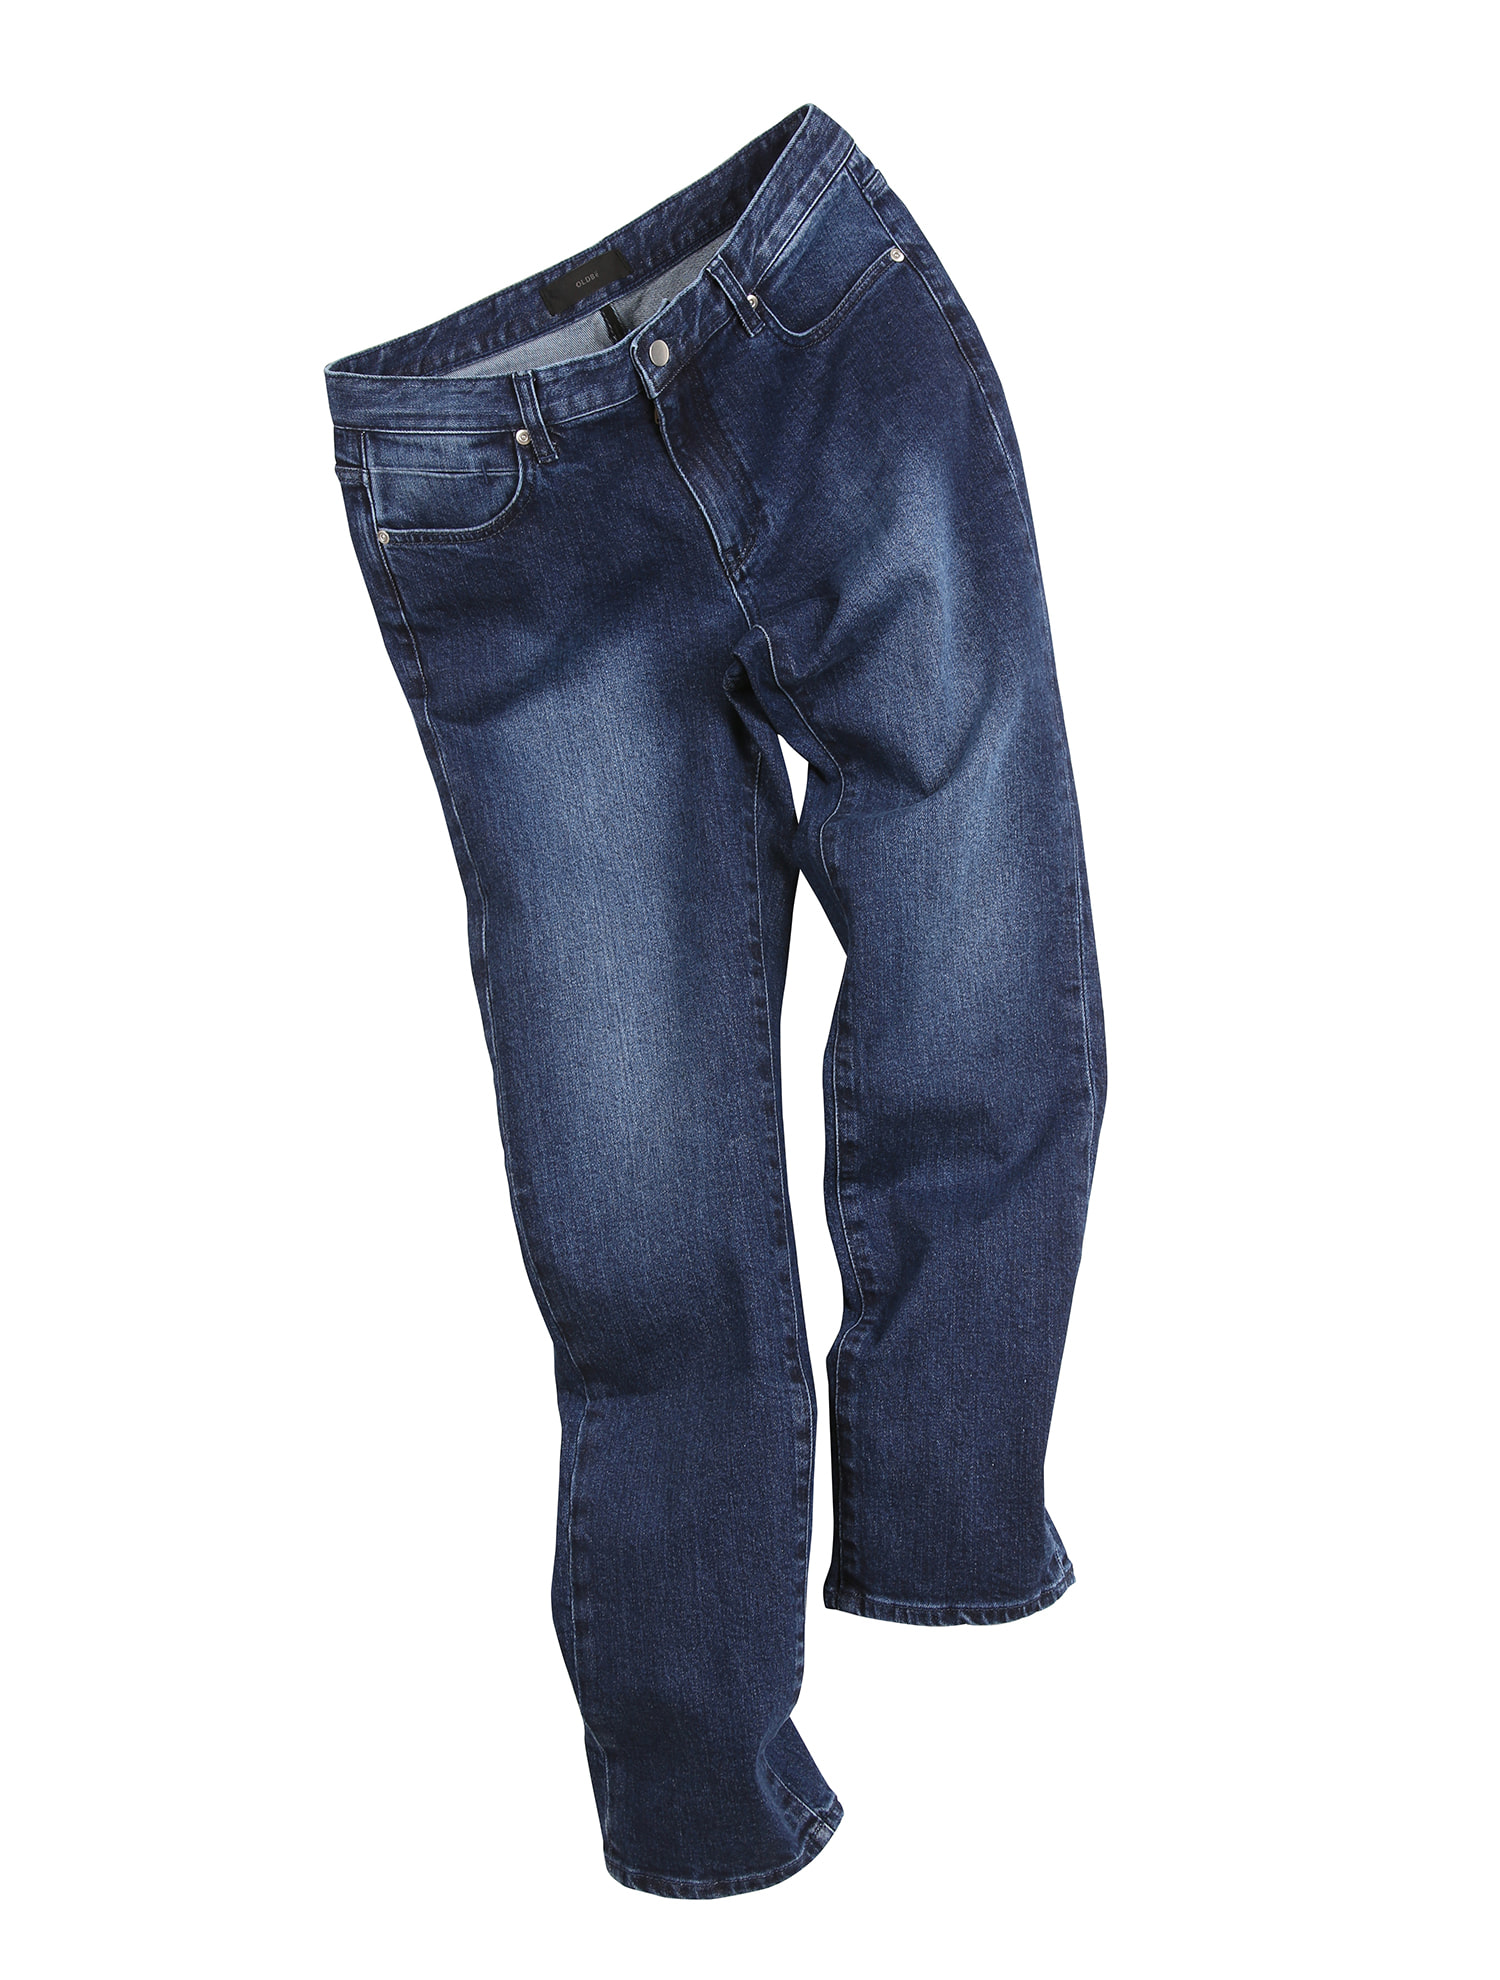 [올드비] TYPE1 Slim Tapered M2 Jeans